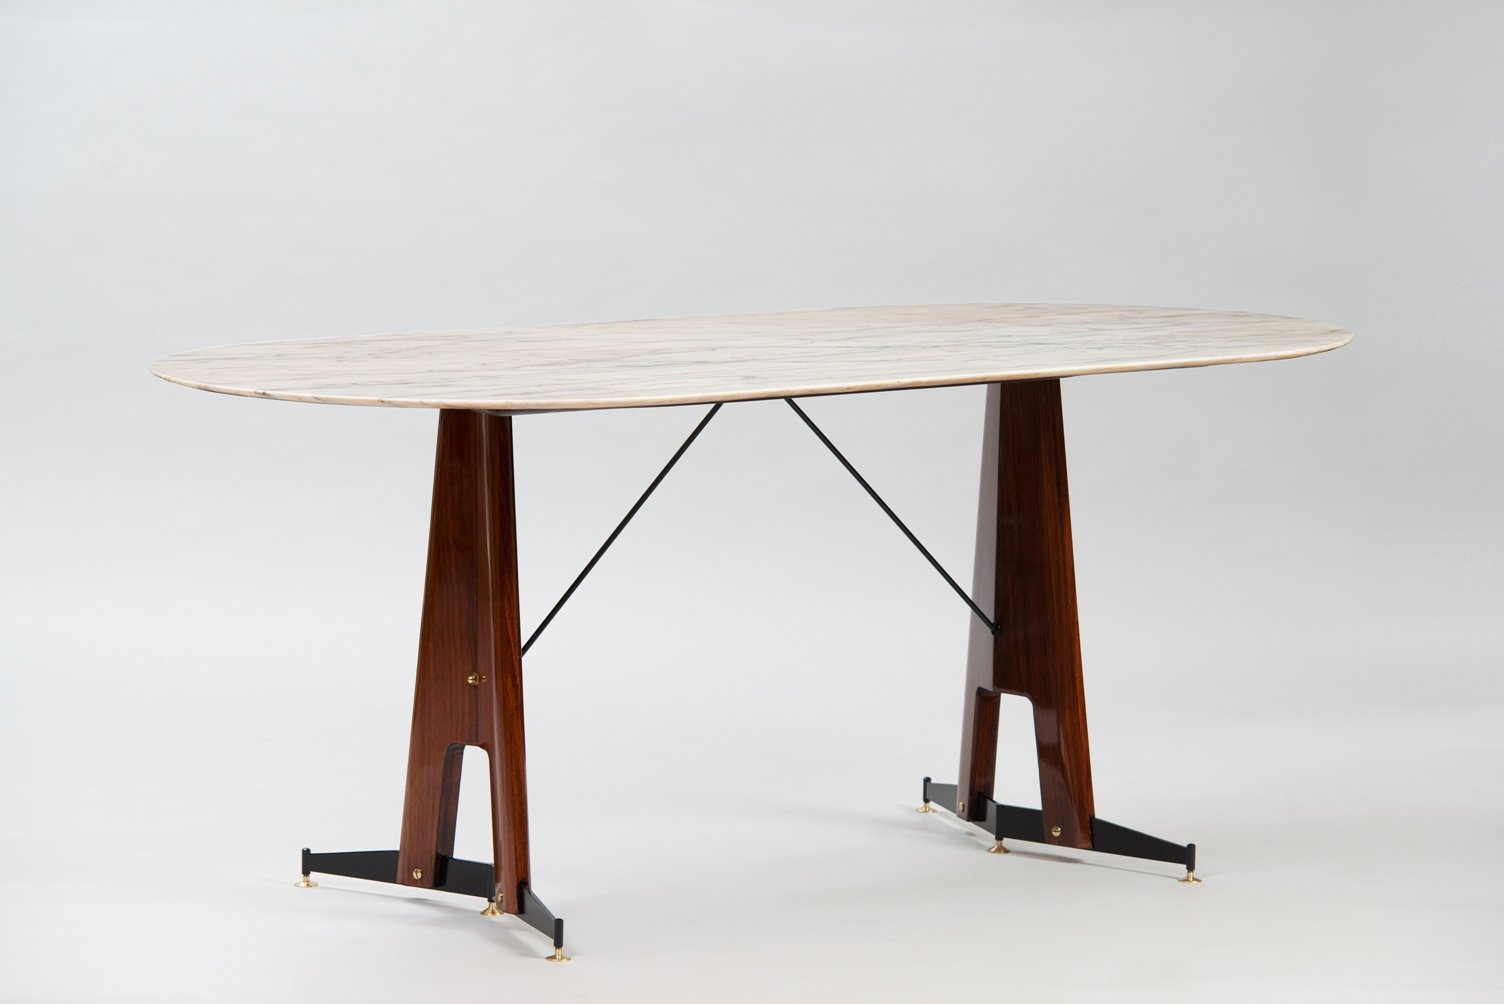 Best table salle a manger marbre design ideas lalawgroup - Table a manger originale ...